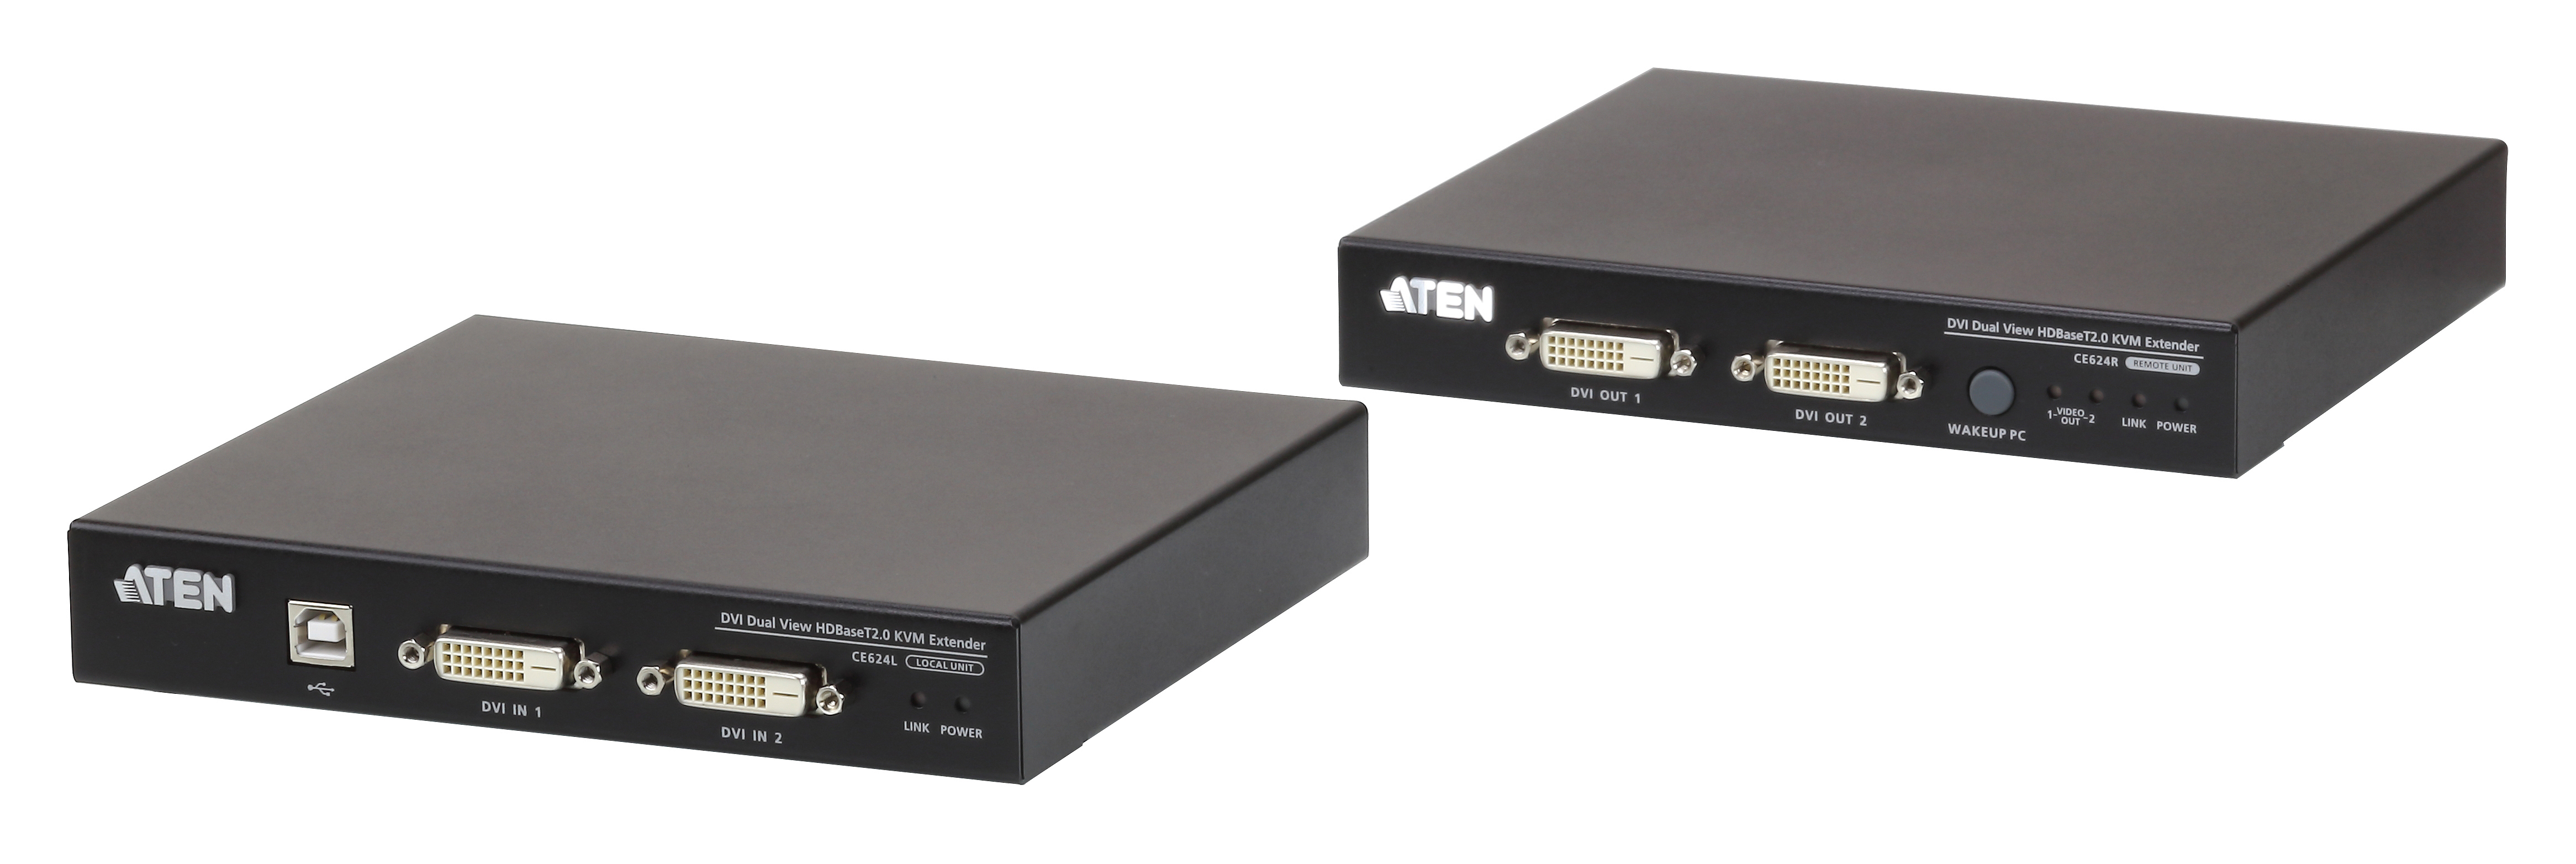 ATEN CE624_Industry's First HDBaseT 2.0 Dual View Extender